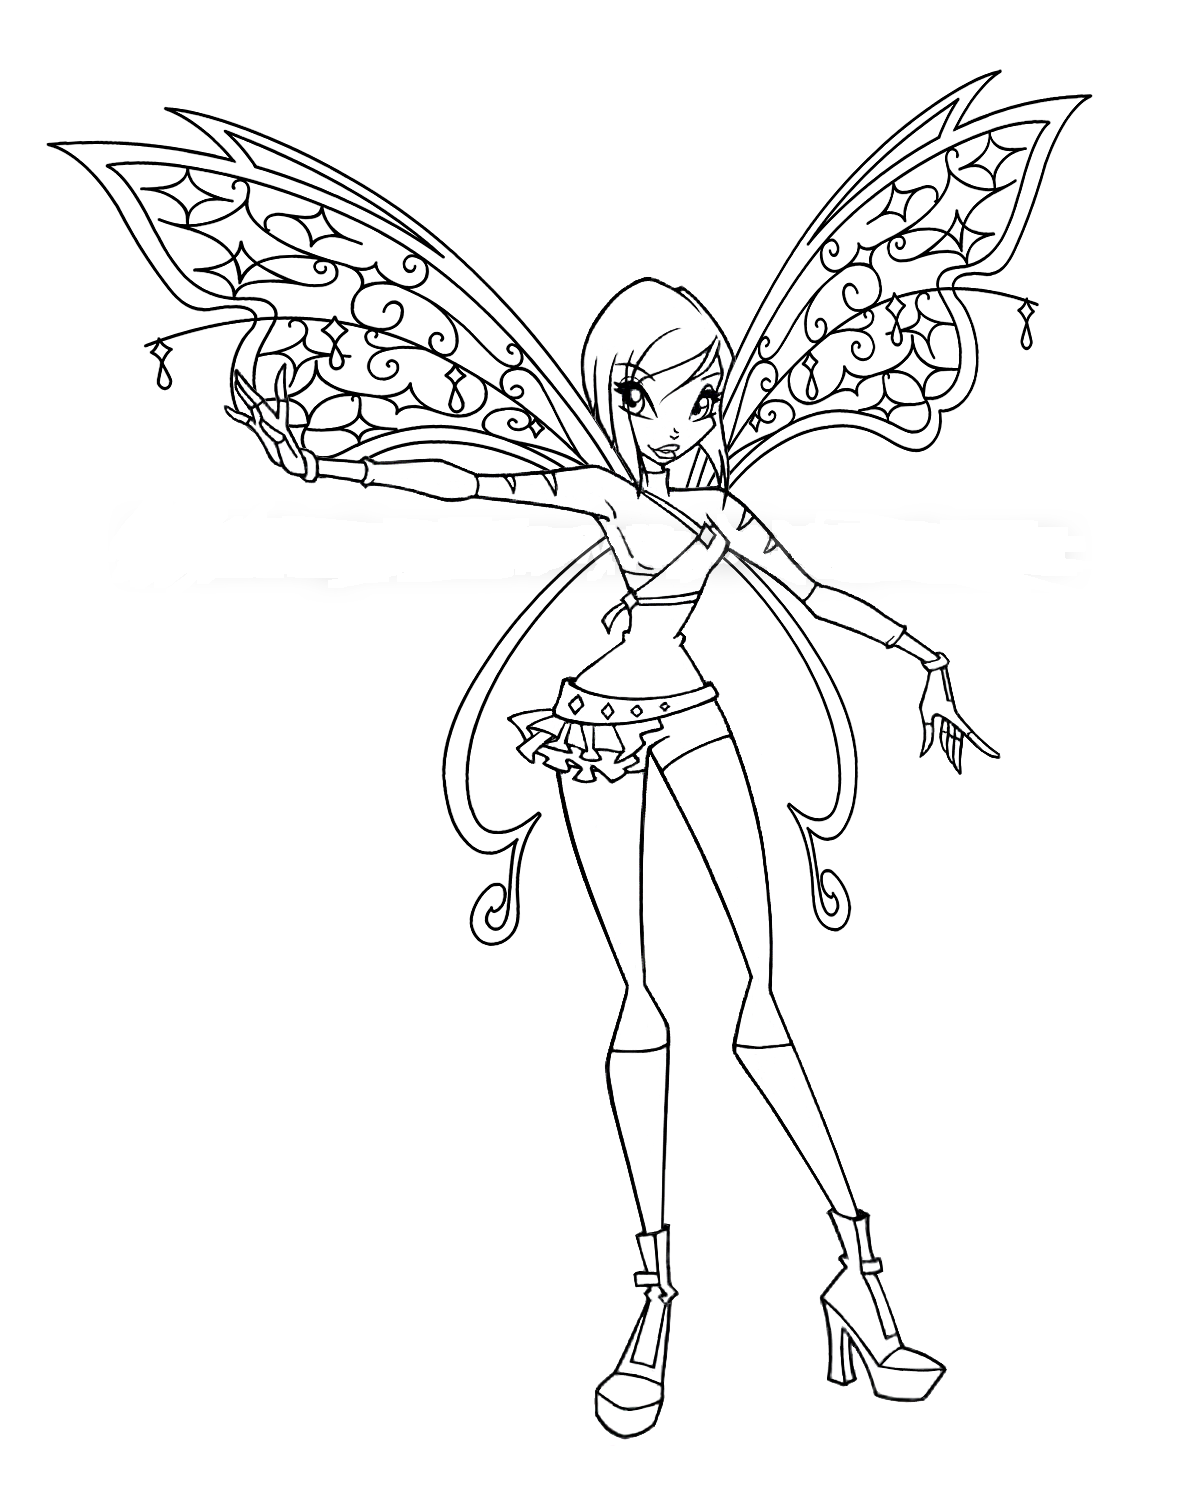 winx club colouring pages believix maxalae winx club believix colouring pages club pages winx believix colouring